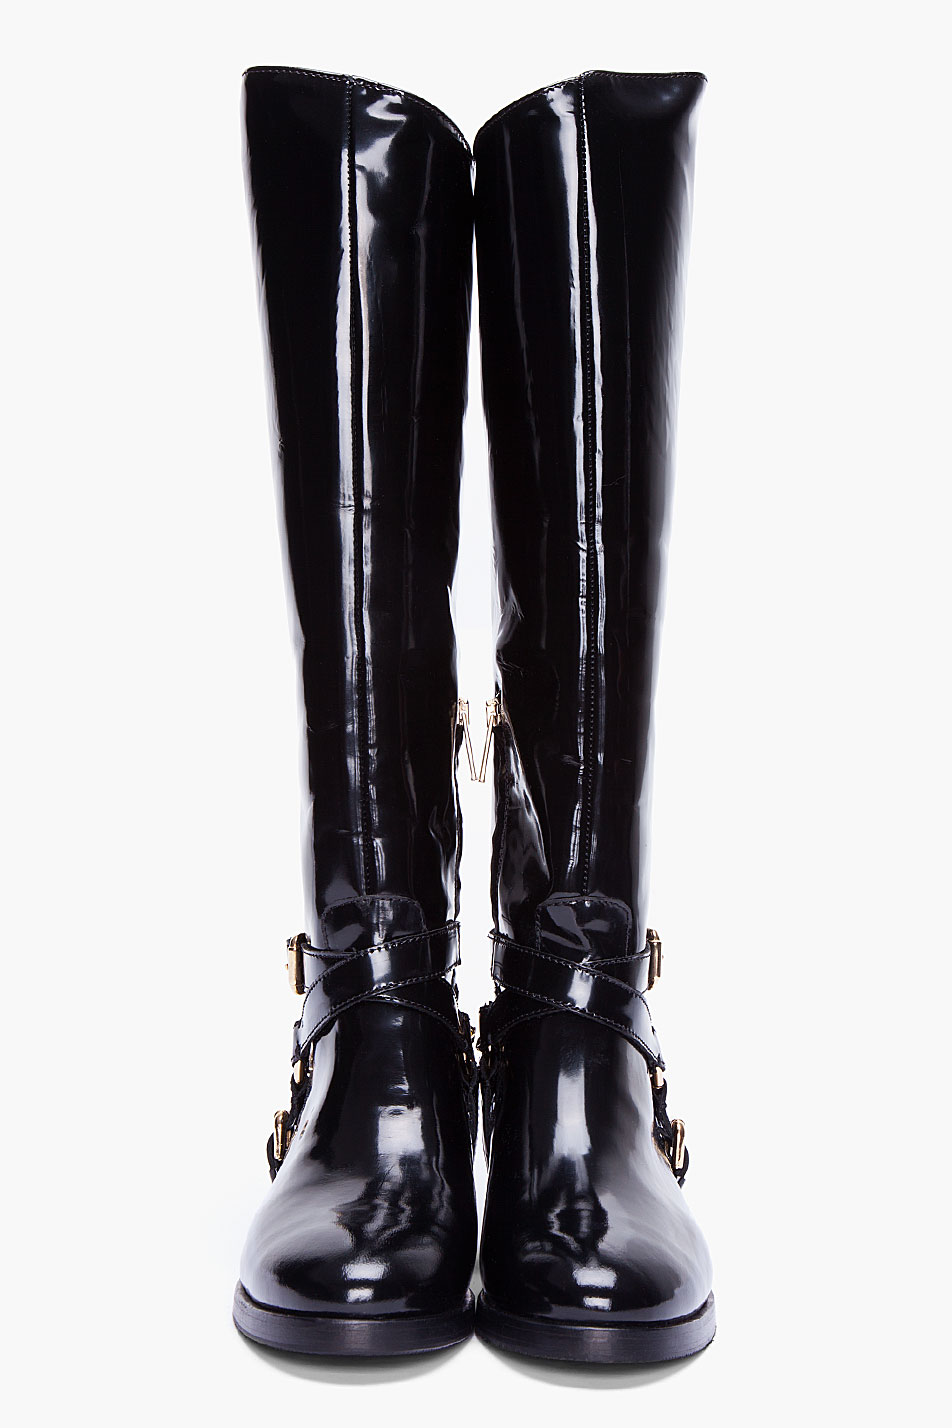 Lyst Mcq Black Patent Riding Boots In Black